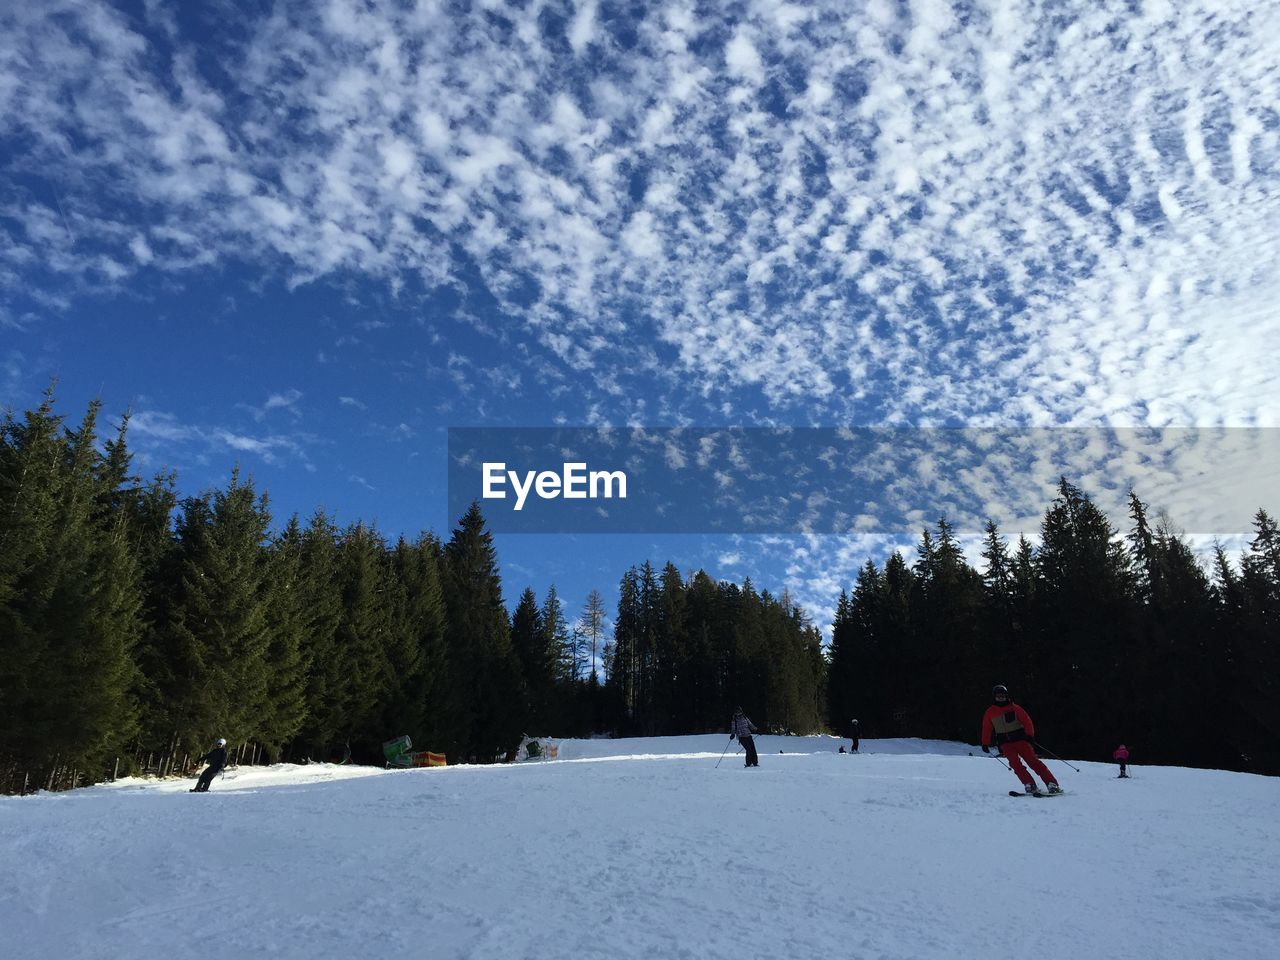 snow, winter, cold temperature, tree, nature, sky, activity, adventure, leisure activity, sport, two people, beauty in nature, men, ski holiday, full length, outdoors, real people, snowboarding, extreme sports, friendship, day, warm clothing, people